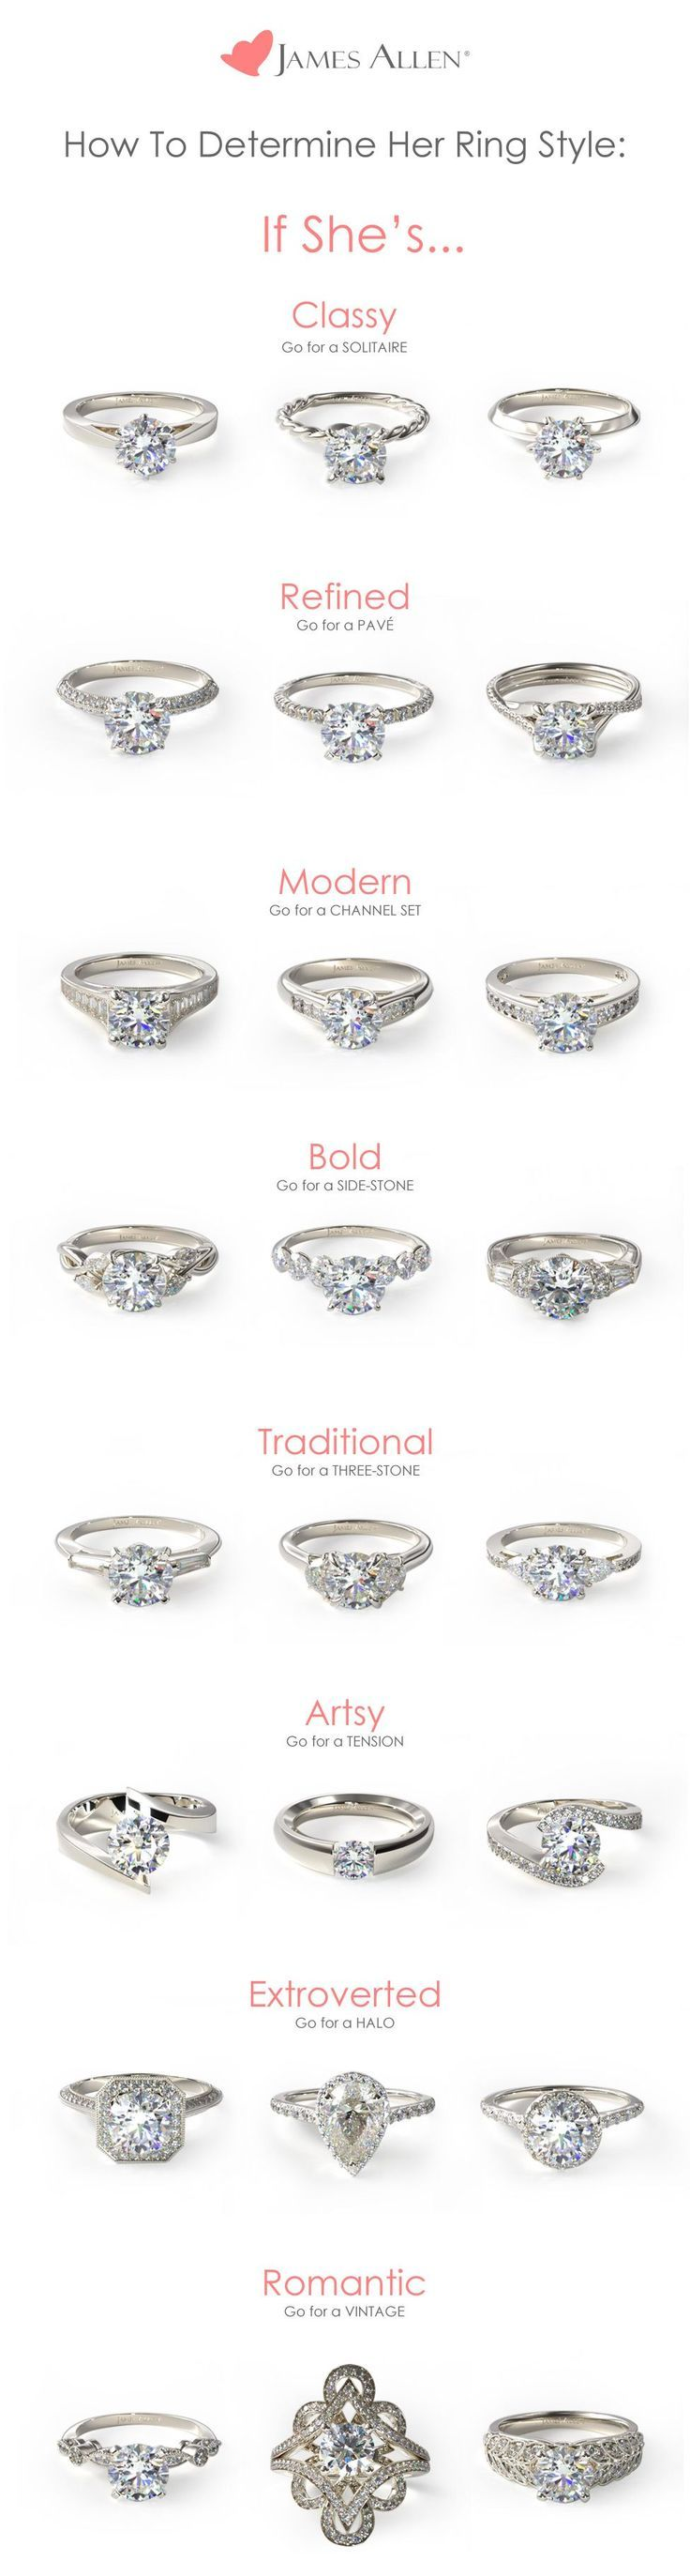 What type of ring suits her best? This doesn't need to be a guessing game :-) Find her dream engagement ring with this guide.